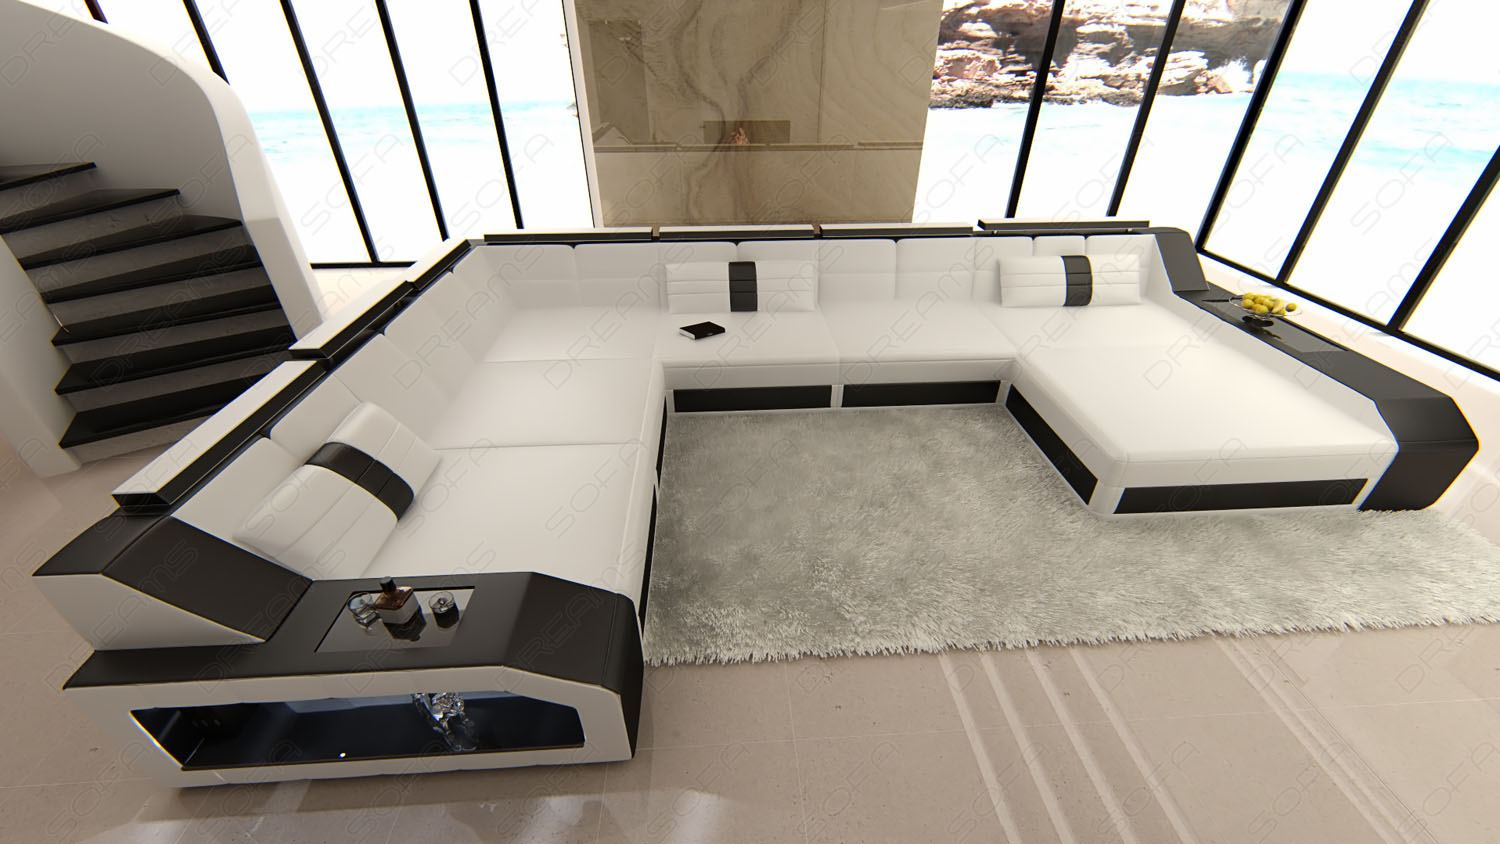 design sectional sofa matera xxl with led lights white black ebay. Black Bedroom Furniture Sets. Home Design Ideas